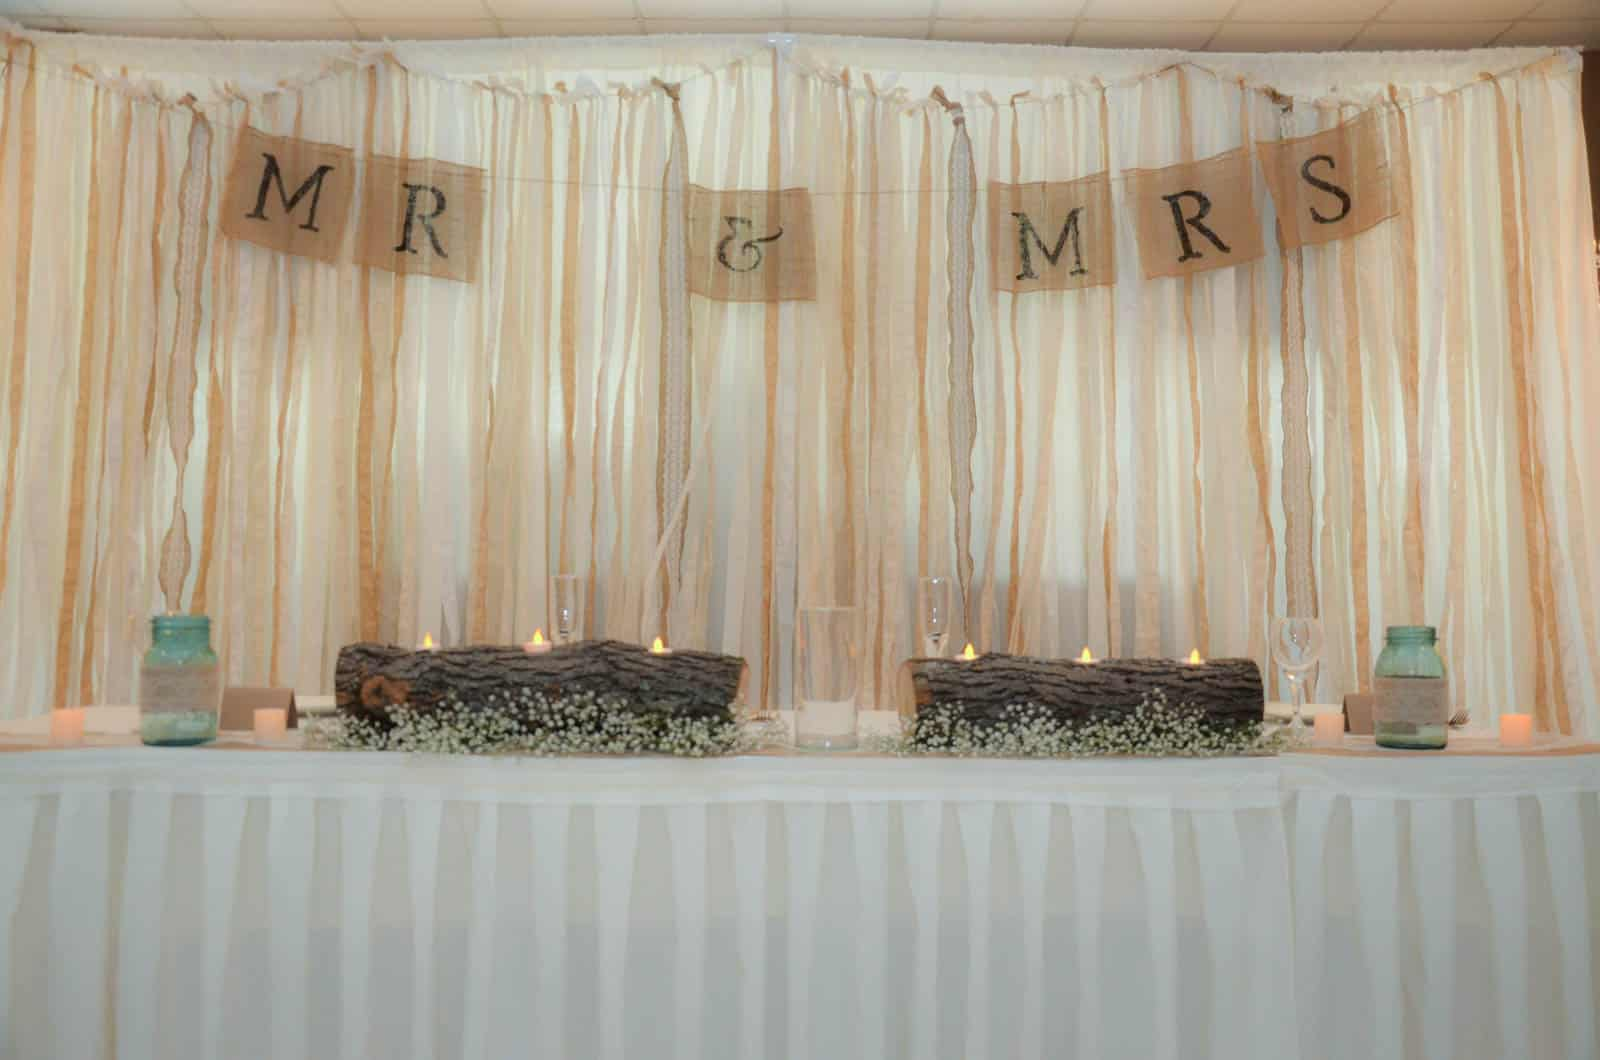 Burlap and Lace Country Wedding Decorations - Plowing Through Life